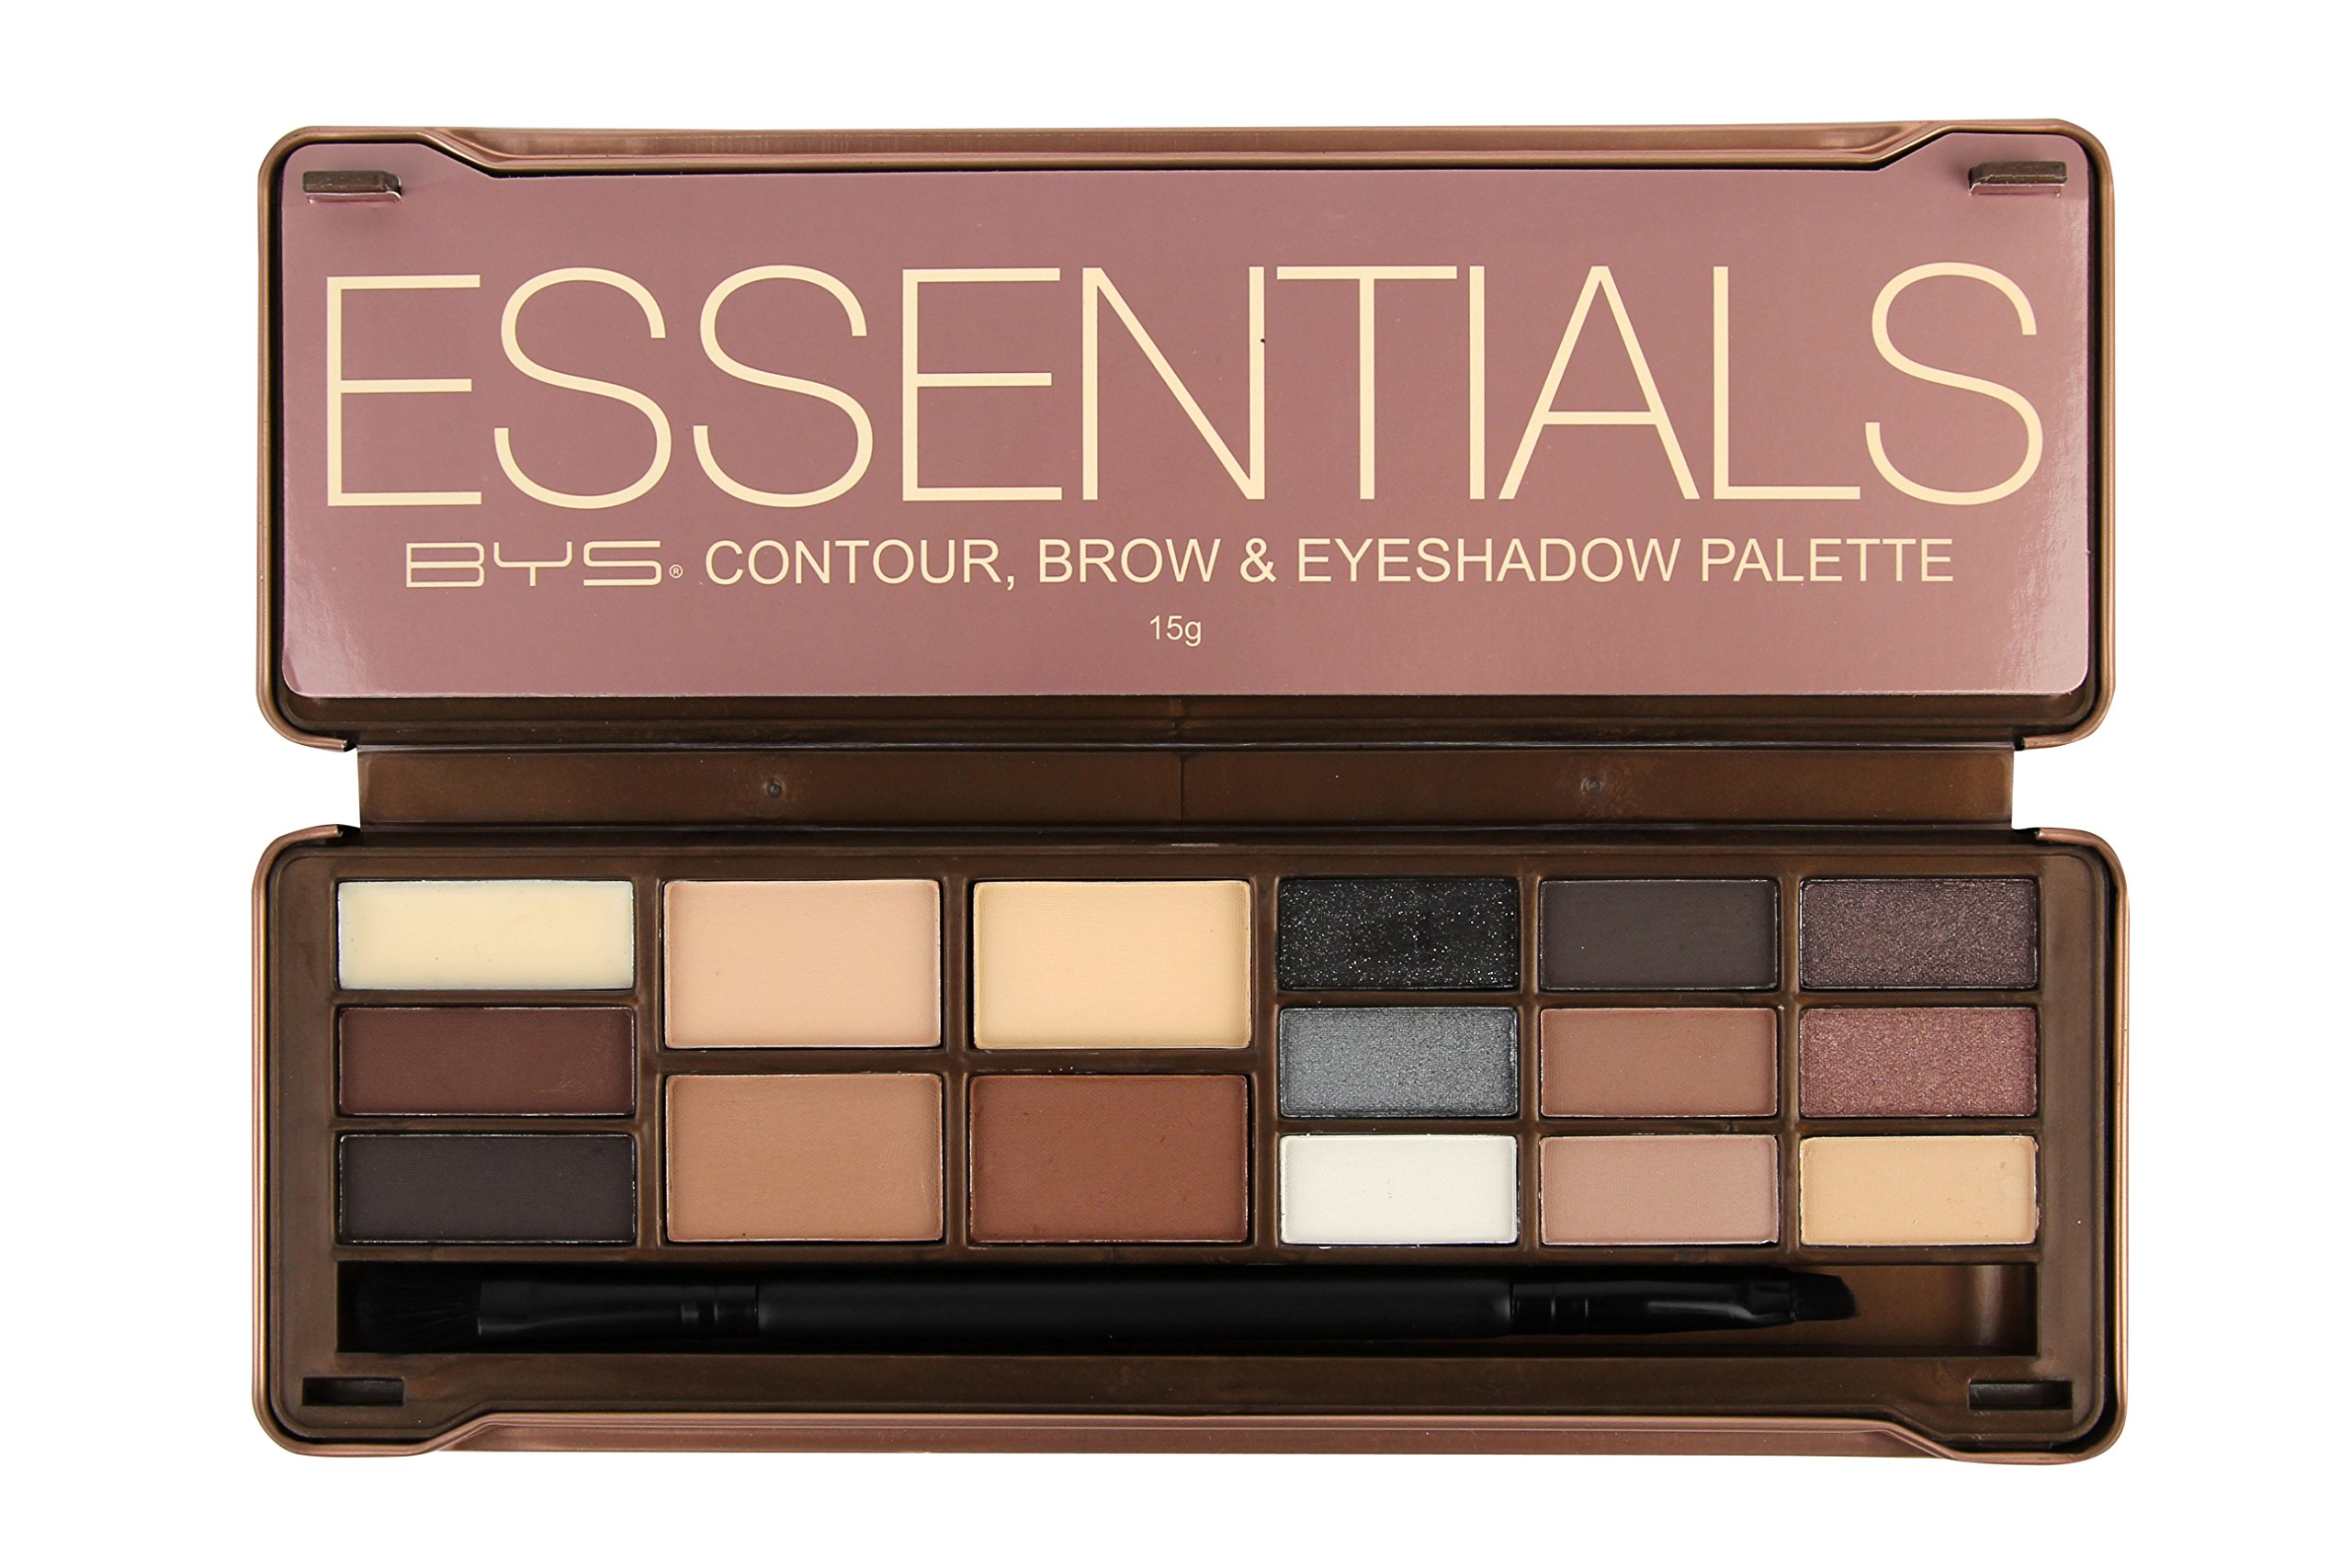 BYS Essentials Contour, Brow & Eyeshadow Palette Tin Collection with Mirror and Dual End Applicator